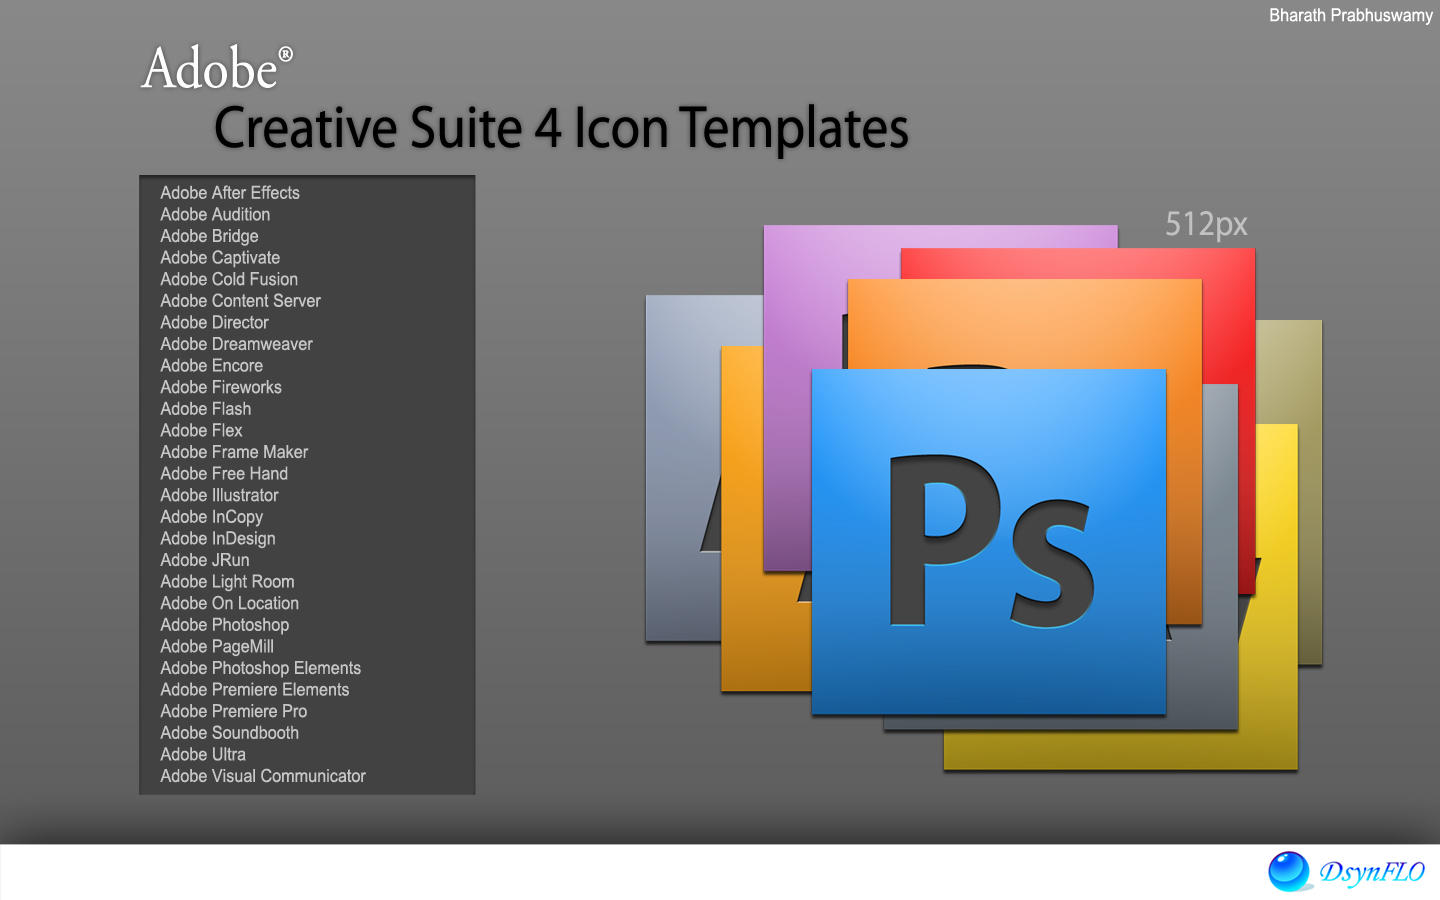 adobe cs4 icon templates by bharathp666 on deviantart